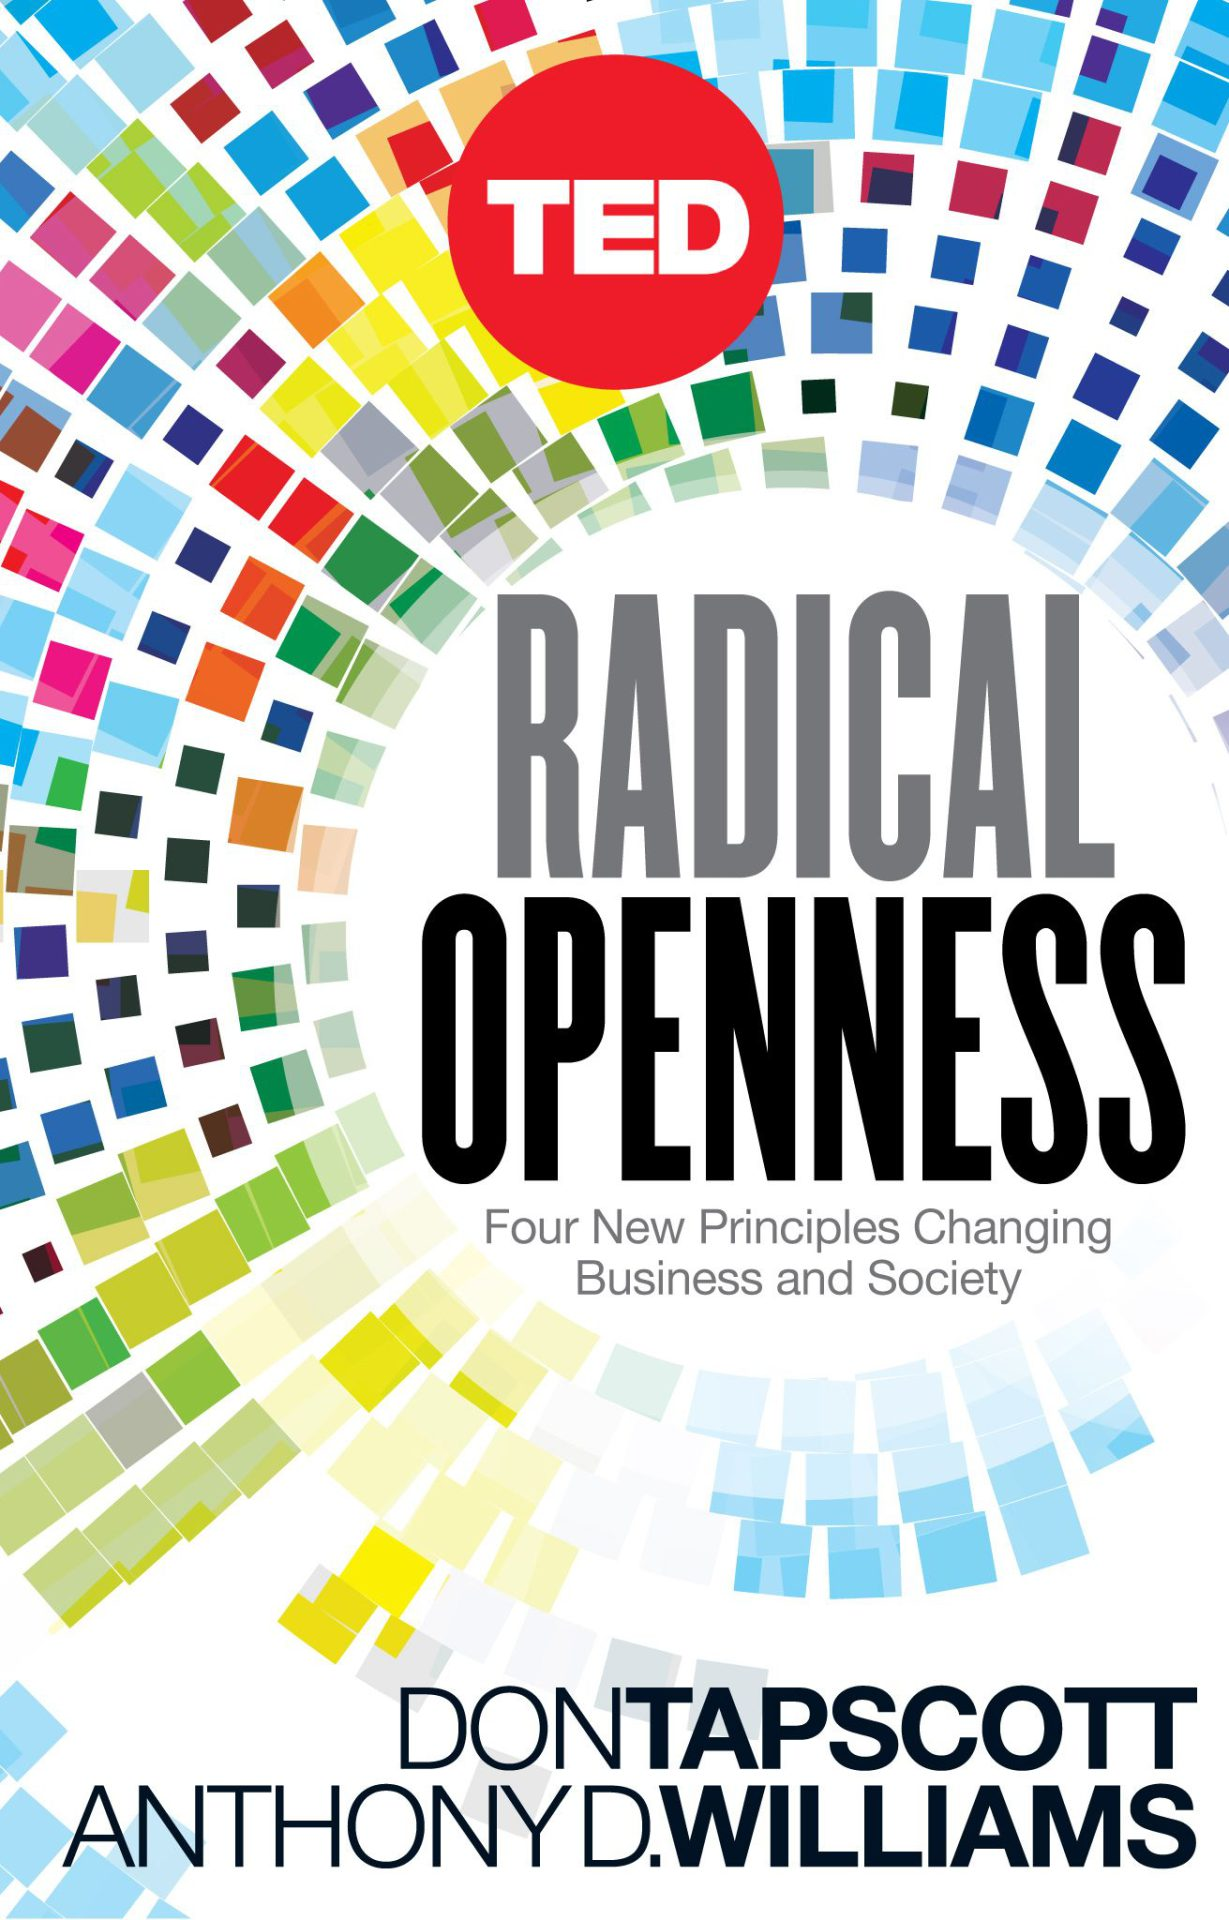 Don Tapscott TED Book Radical Openness